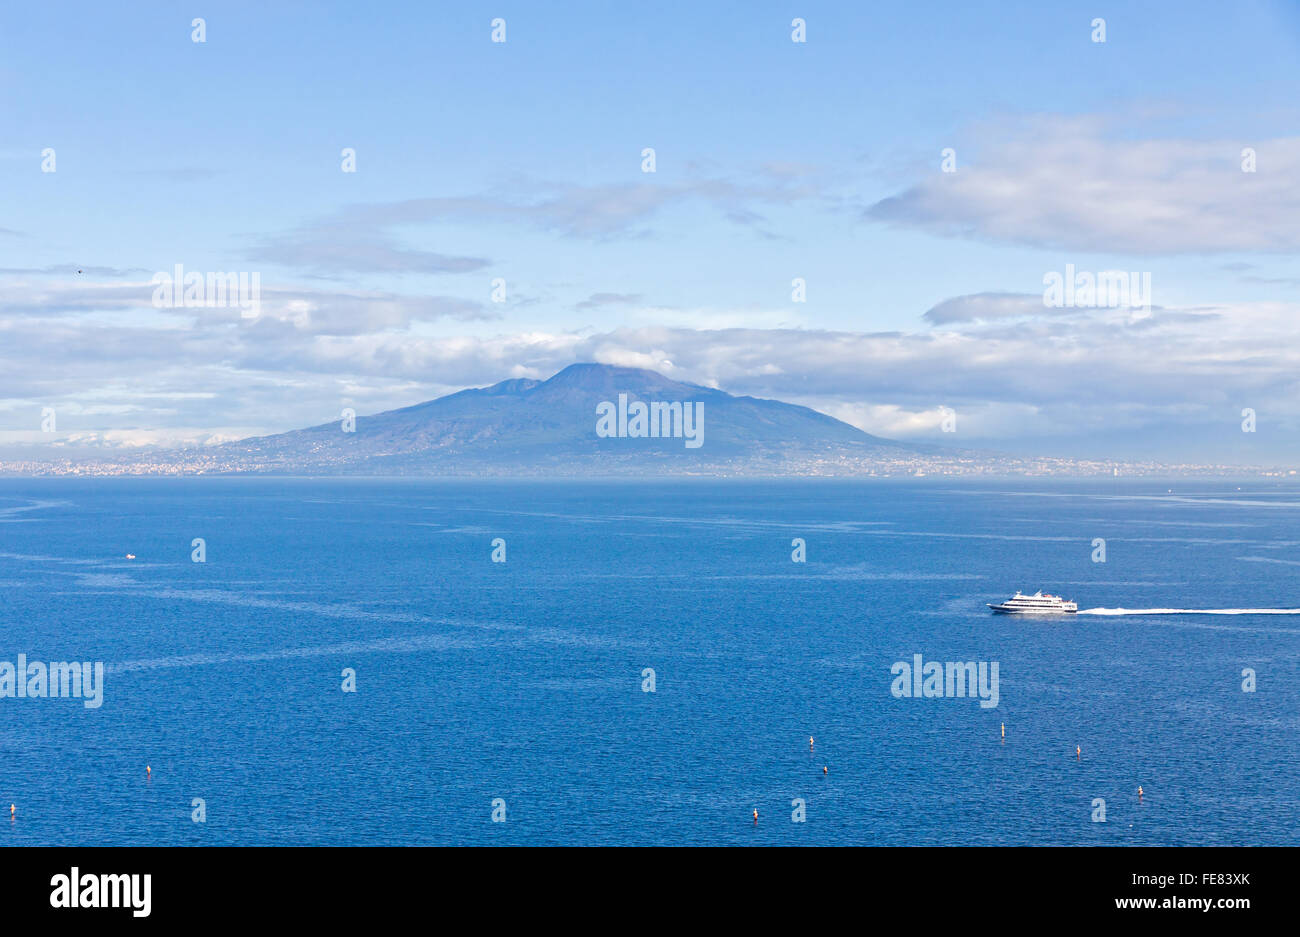 Picturesque view of Gulf of Naples and Mount Vesuvius on the background. View from Sorrento city, Campania, Italy - Stock Image